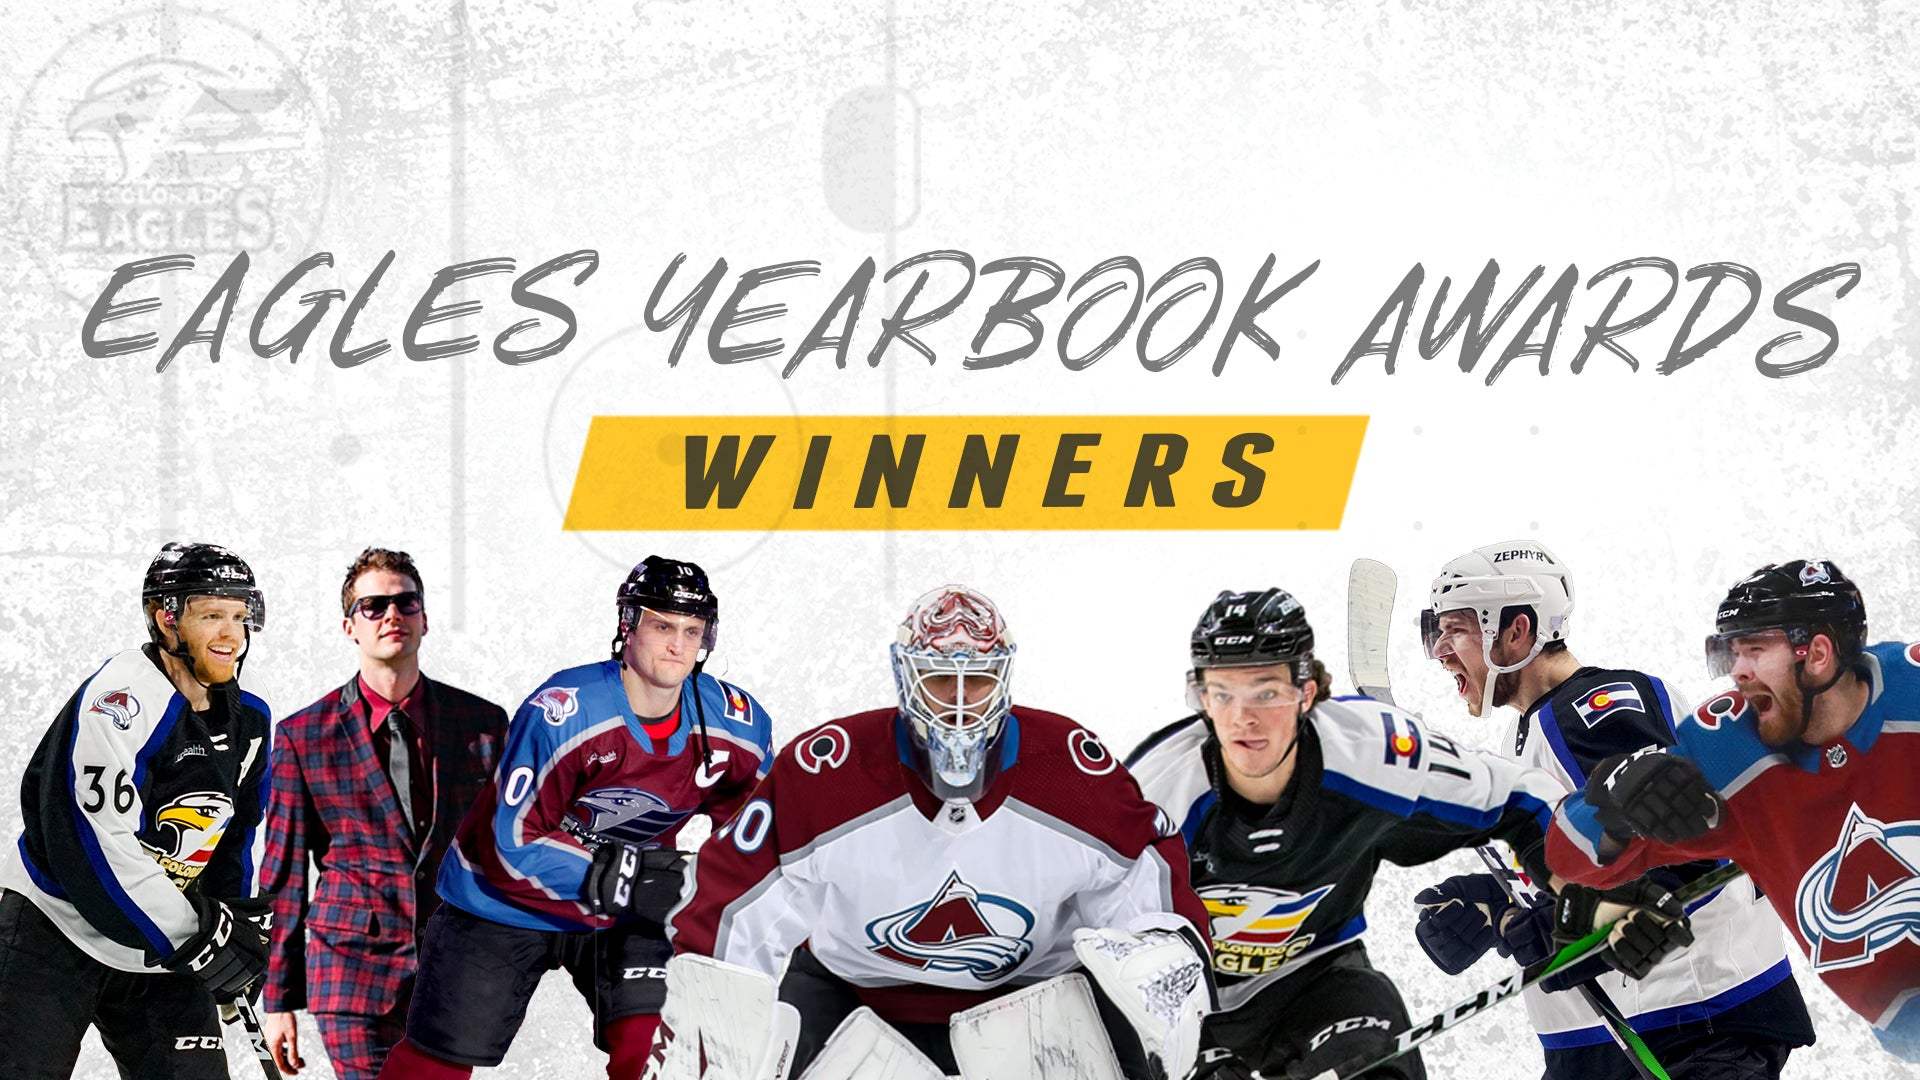 Eagles Announce 2019-20 Yearbook Award Winners | Colorado Eagles 16